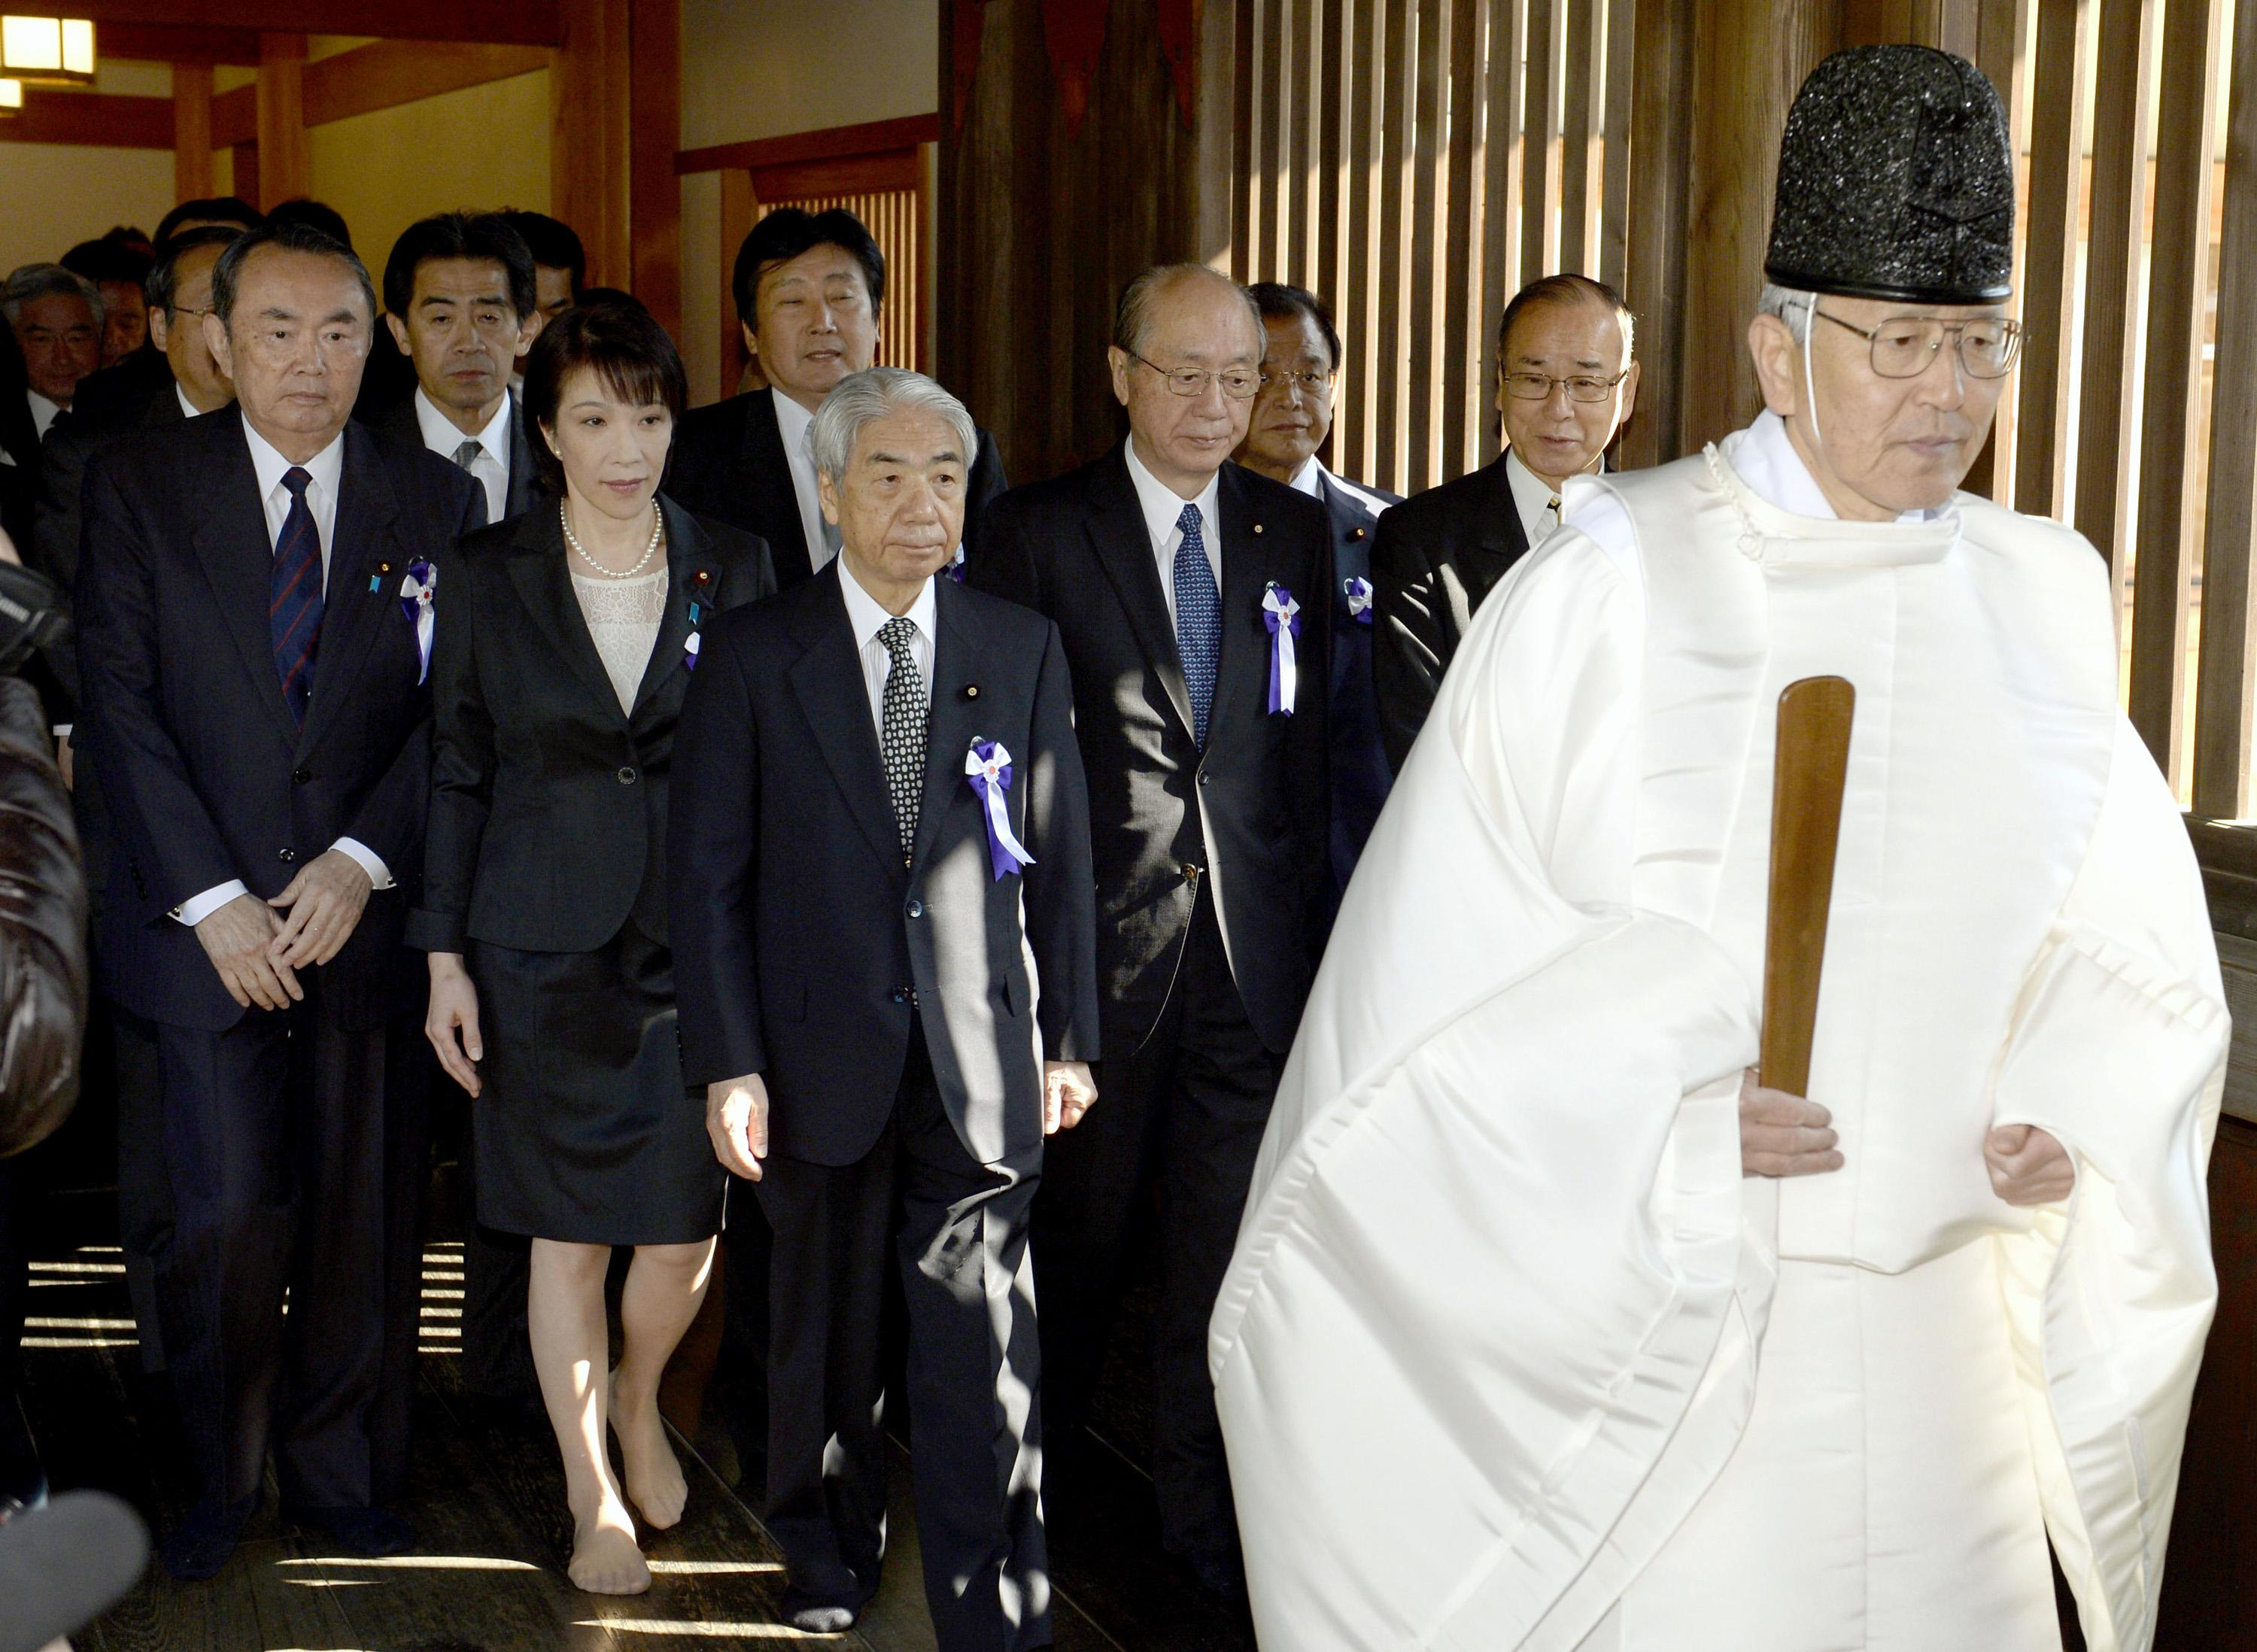 A group of Japanese lawmakers are led by a Shinto priest at the Yasukuni Shrine in Tokyo during an annual spring festival on Tuesday, April 23, 2013. Marking the spring festival, 168 lawmakers paid homage to the controversial war shrine. (AP Photo/Kyodo News) JAPAN OUT, MANDATORY CREDIT, NO LICENSING IN CHINA, HONG KONG, JAPAN, SOUTH KOREA AND FRANCE